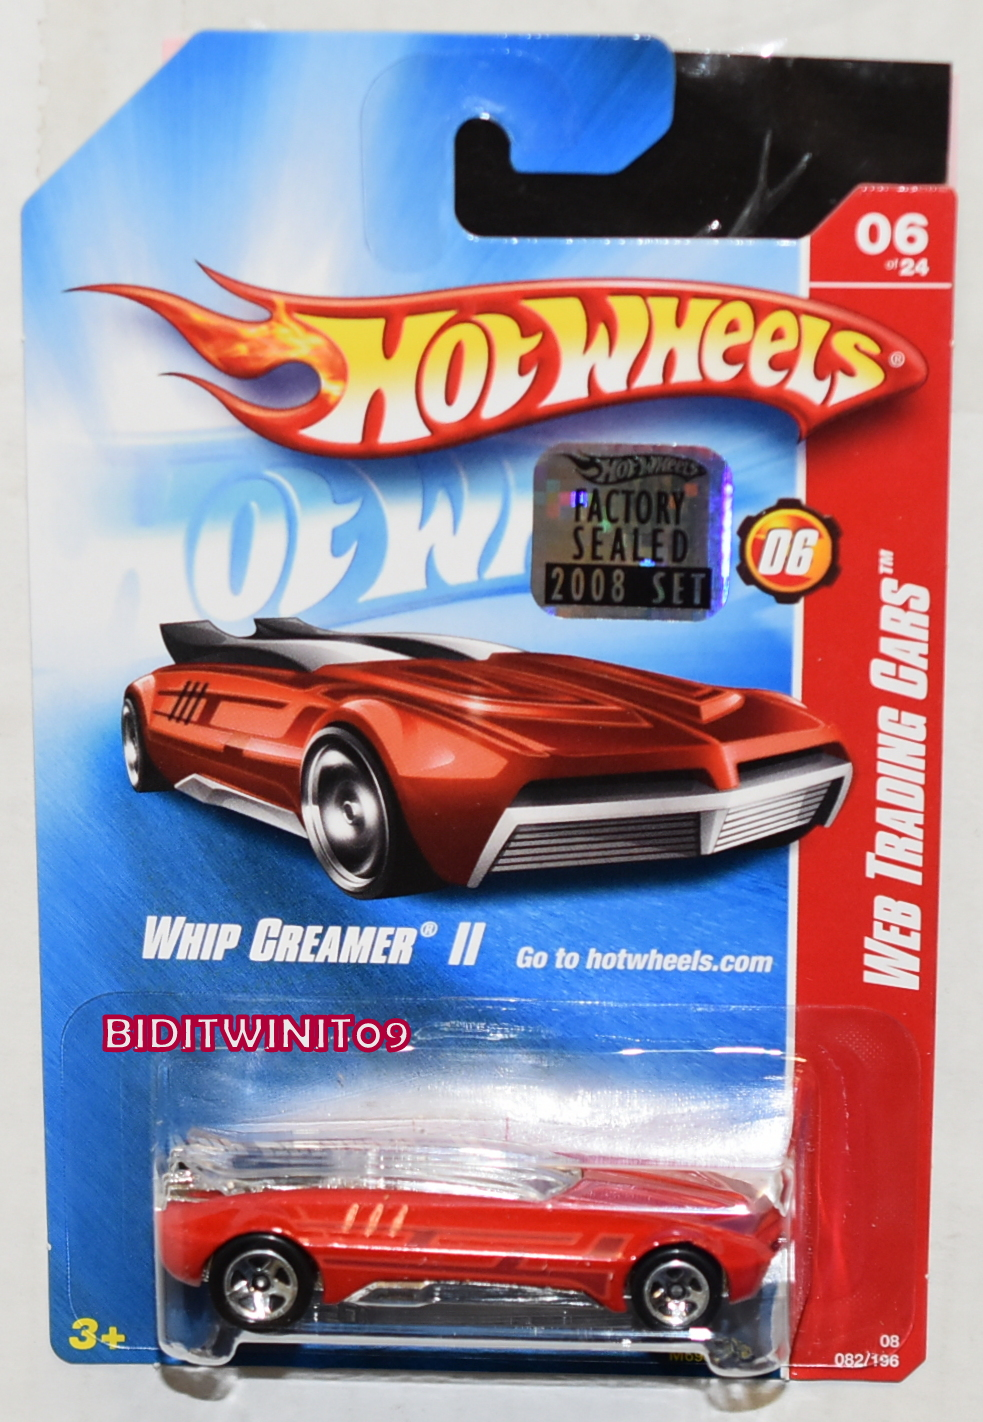 HOT WHEELS 2008 WEB TRADING CARS WHIP CREAMER II RED FACTORY SEALED